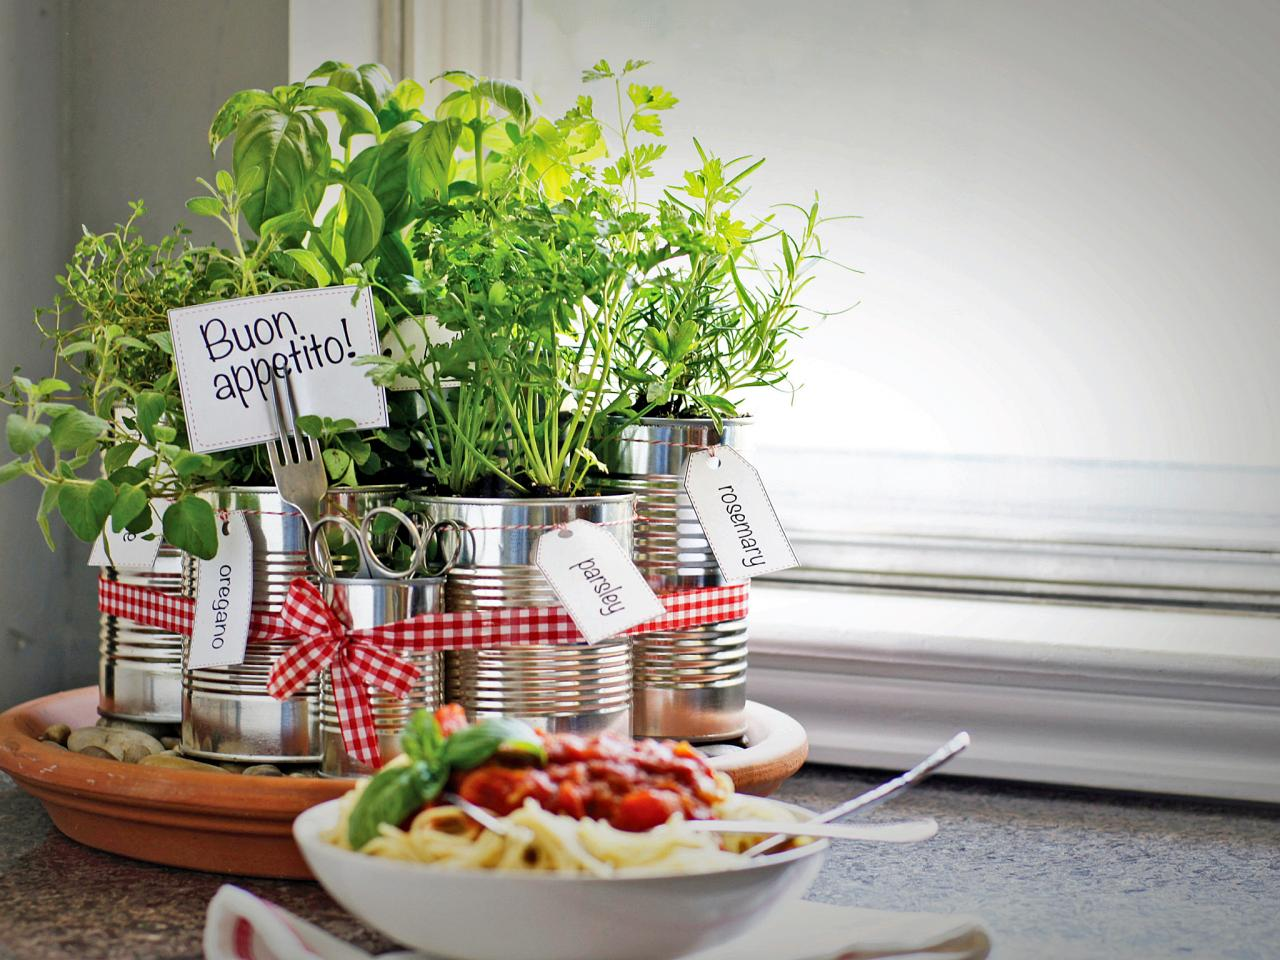 5 indoor herb garden ideas | hgtv's decorating & design blog | hgtv